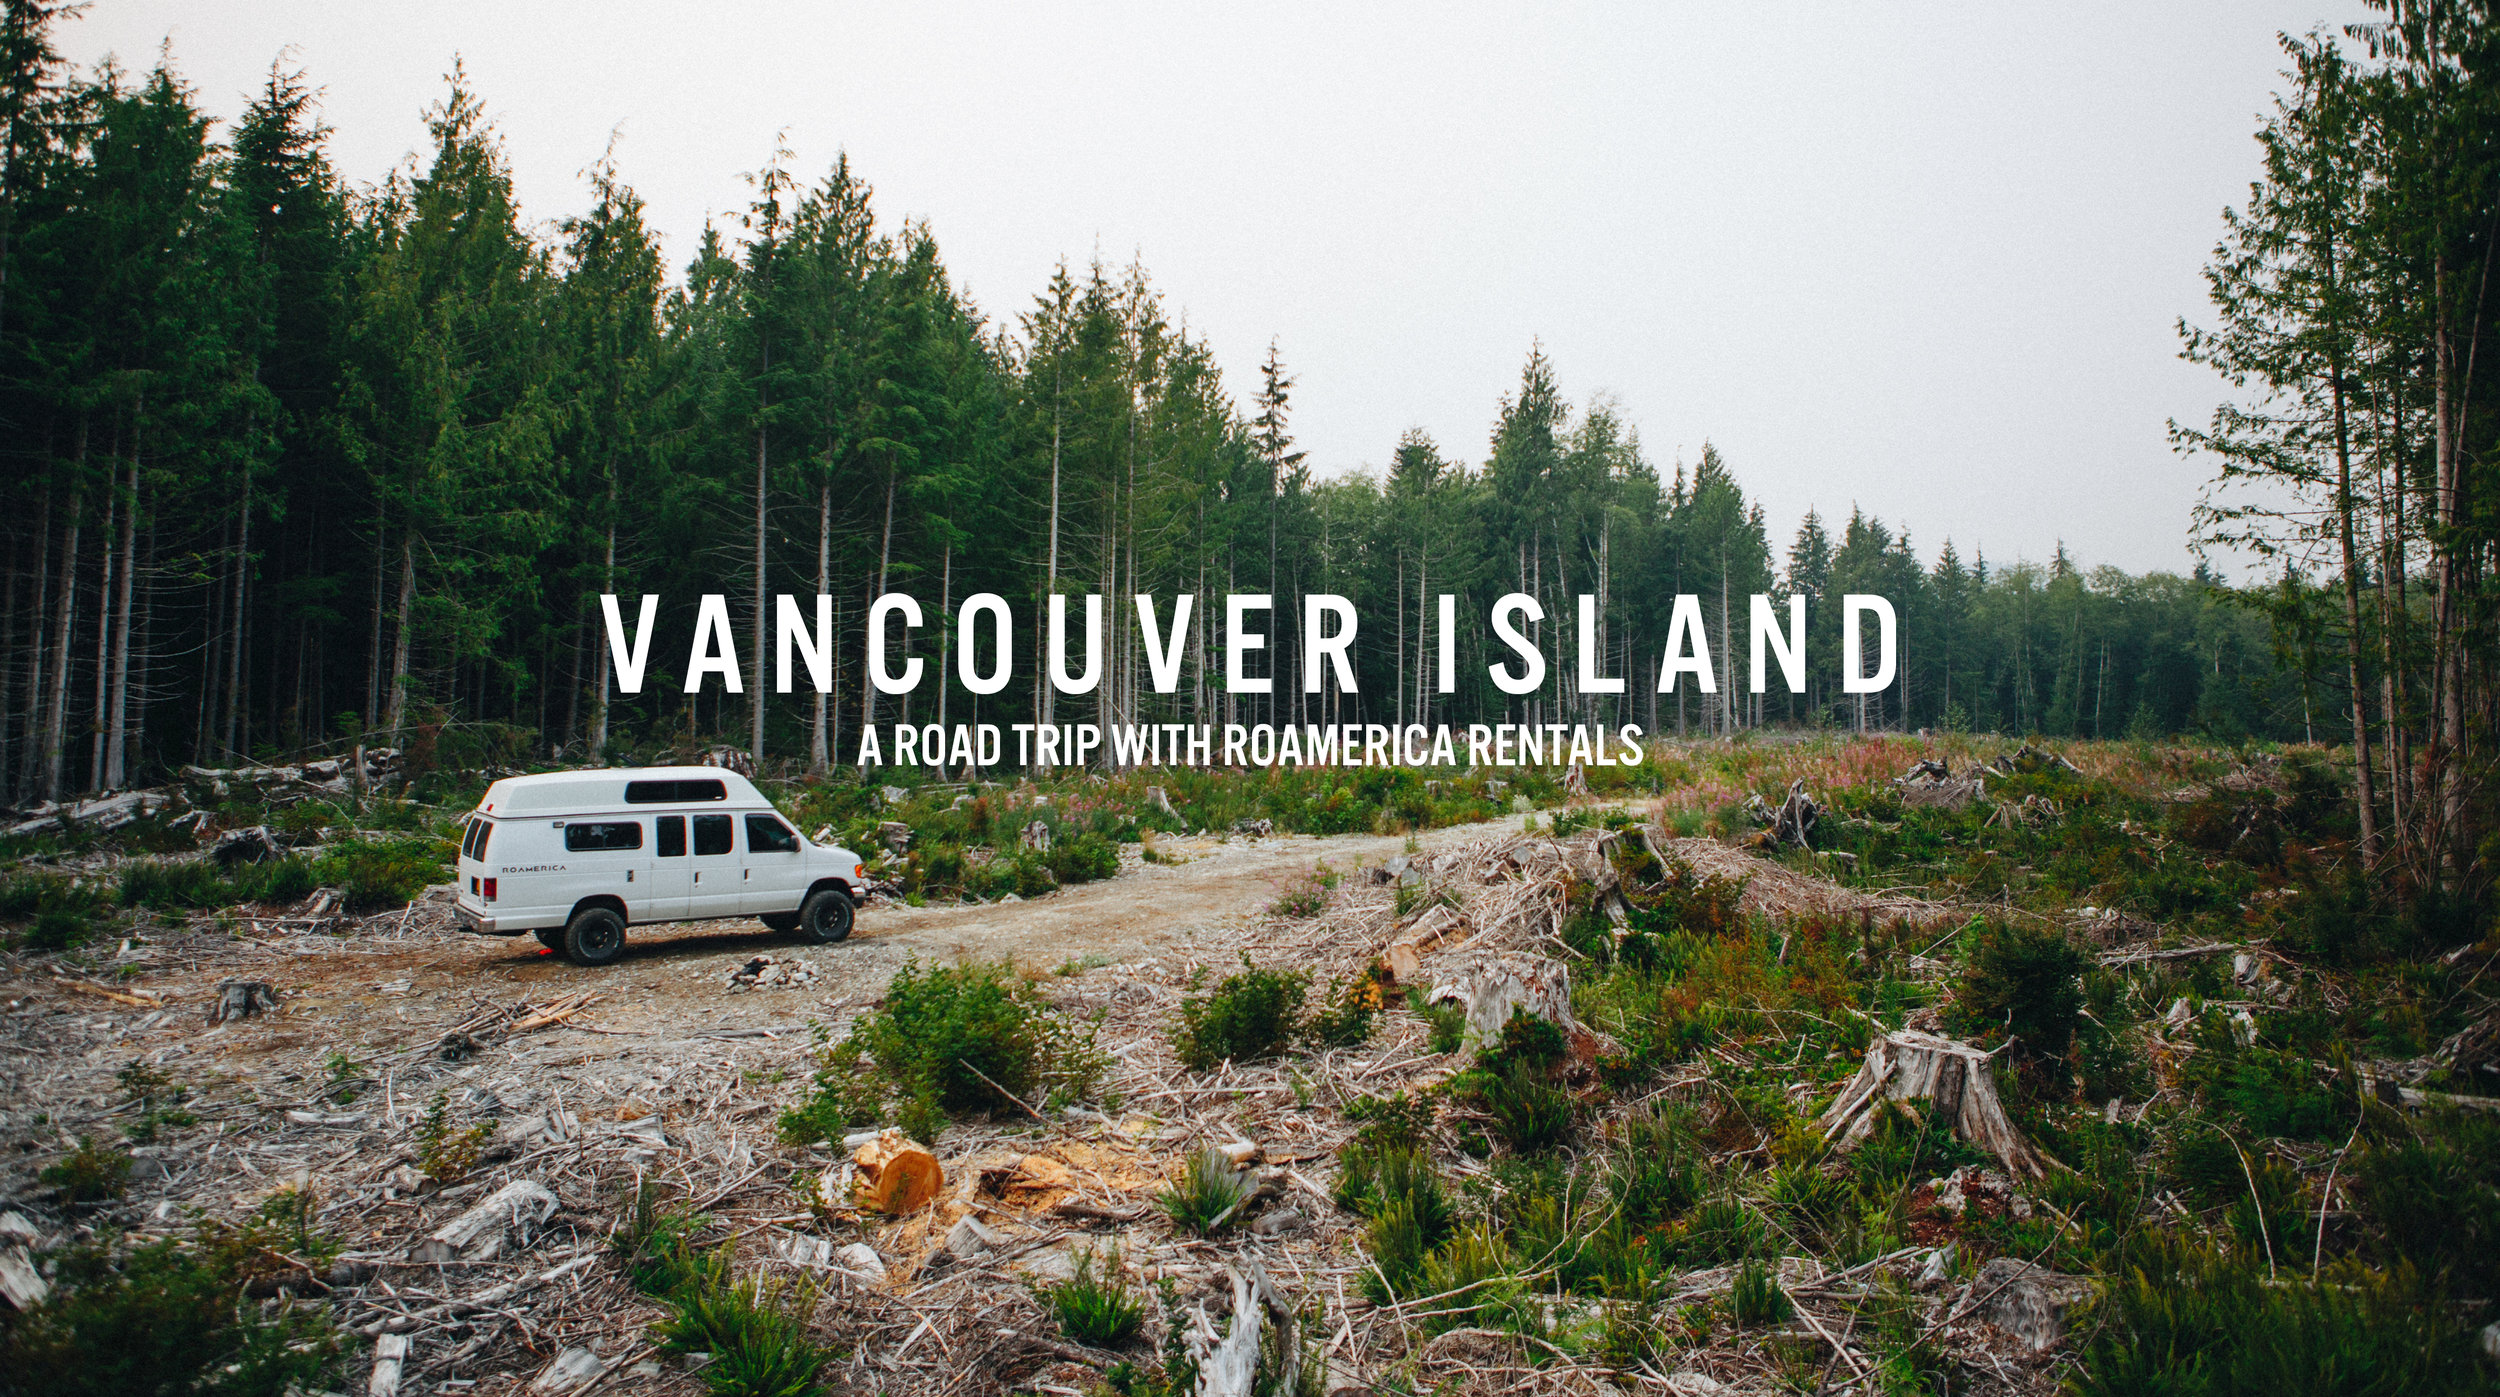 Roamerica Rentals road trip to Vancouver Island, BC Canada - The Beans and Rice Commercial Outdoor Adventure & Lifestyle Content